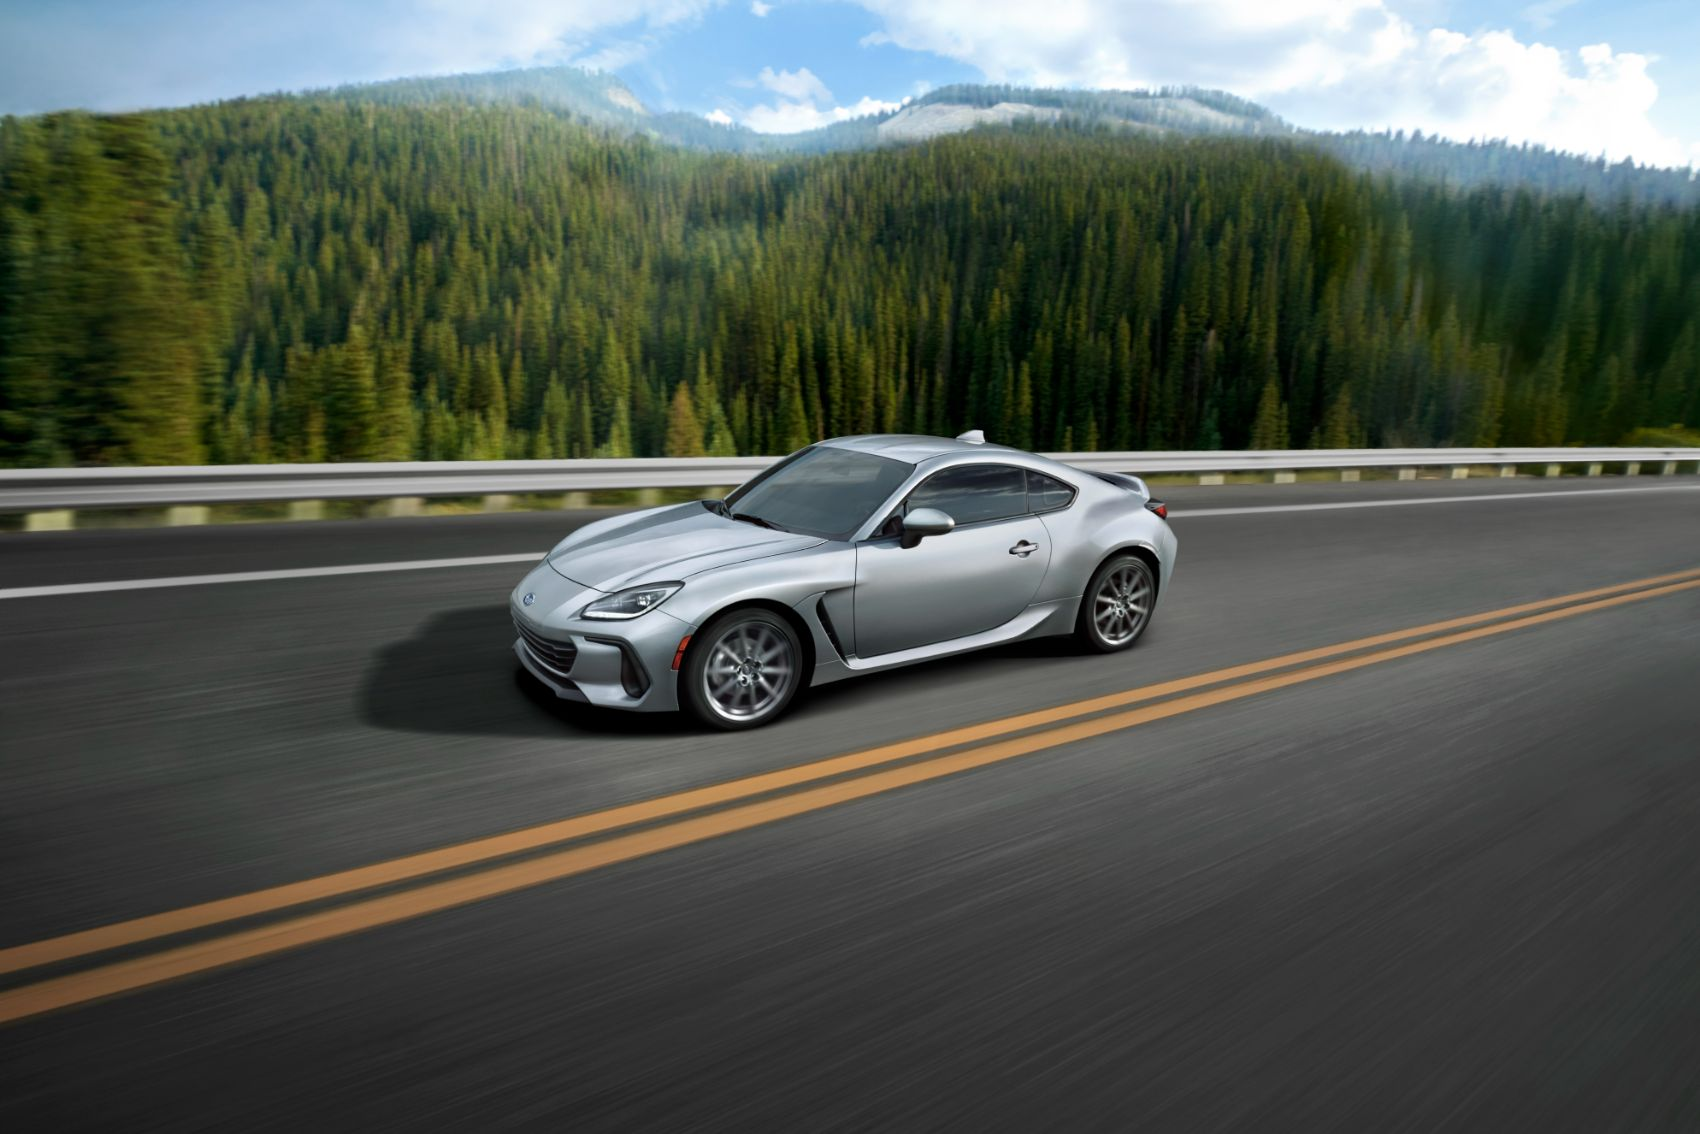 2022 Subaru BRZ: New Styling & More Power For This Fun 2+2 Sports Car